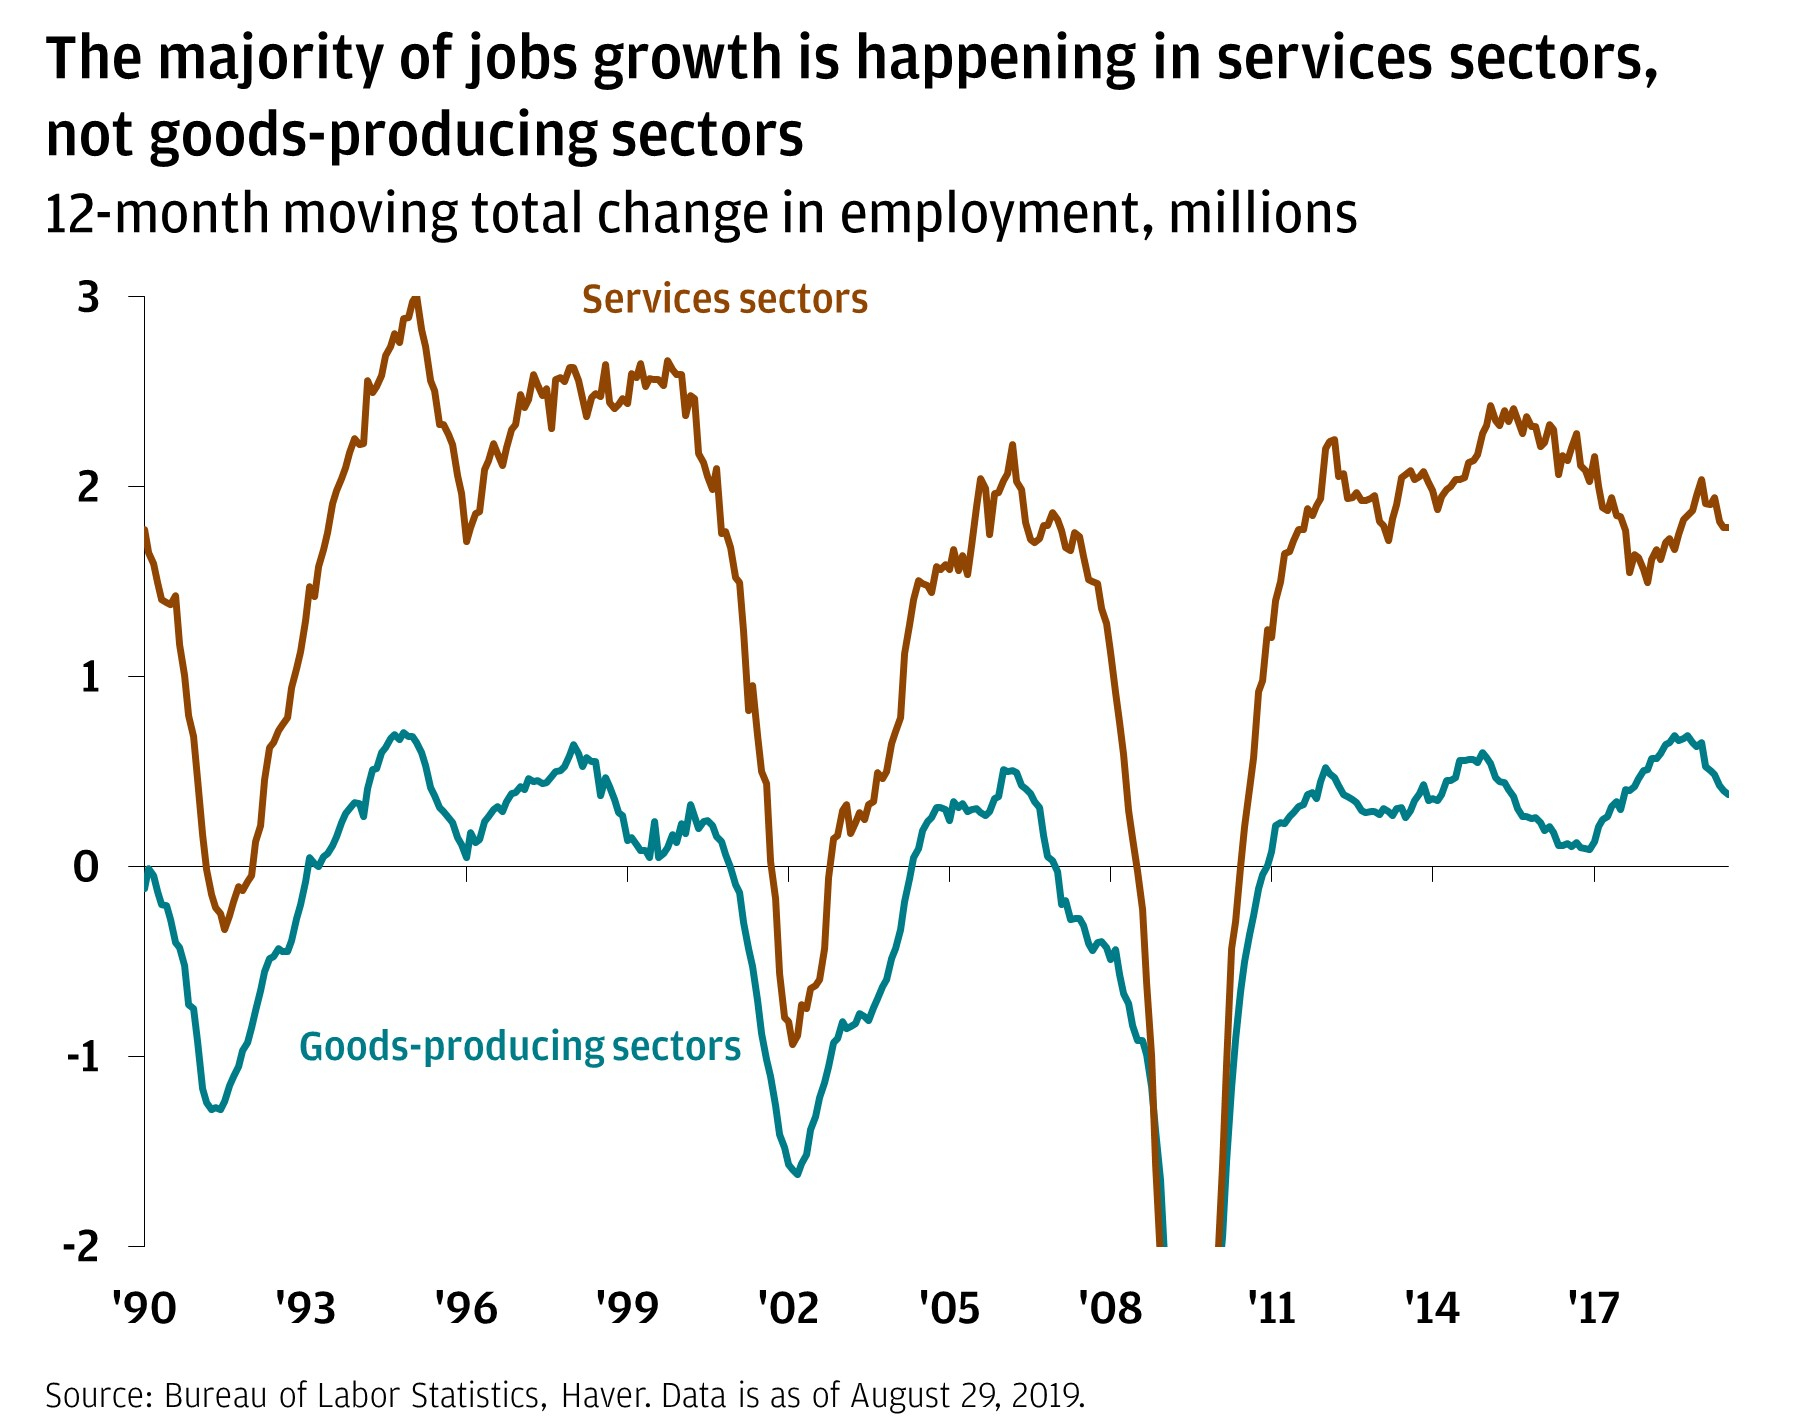 Line chart compares the 12-month moving total change in employment for services sectors and the goods-producing sectors from 1990 to 2019. The chart shows that in the last 12 months, the services line has exceeded the goods line, highlighting that most additional jobs are related to the services sectors.